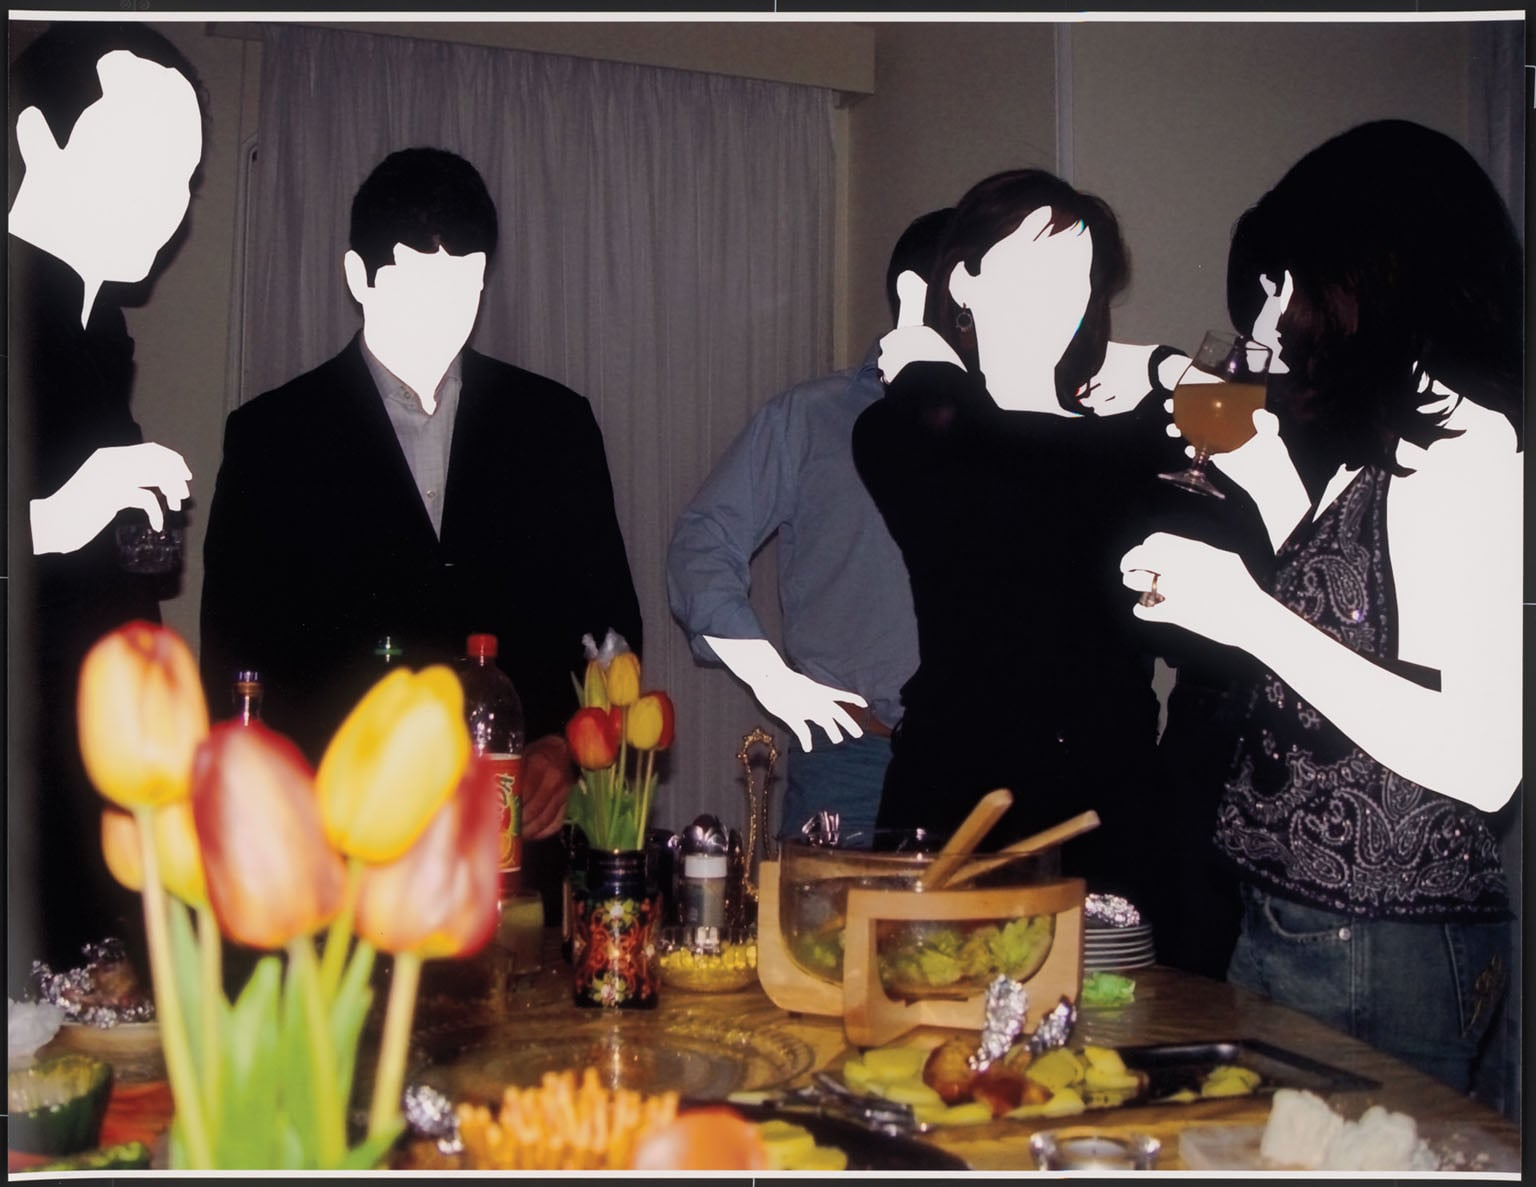 Table with food from 'Party' series (Art Fund Collection of Middle Eastern Photography)